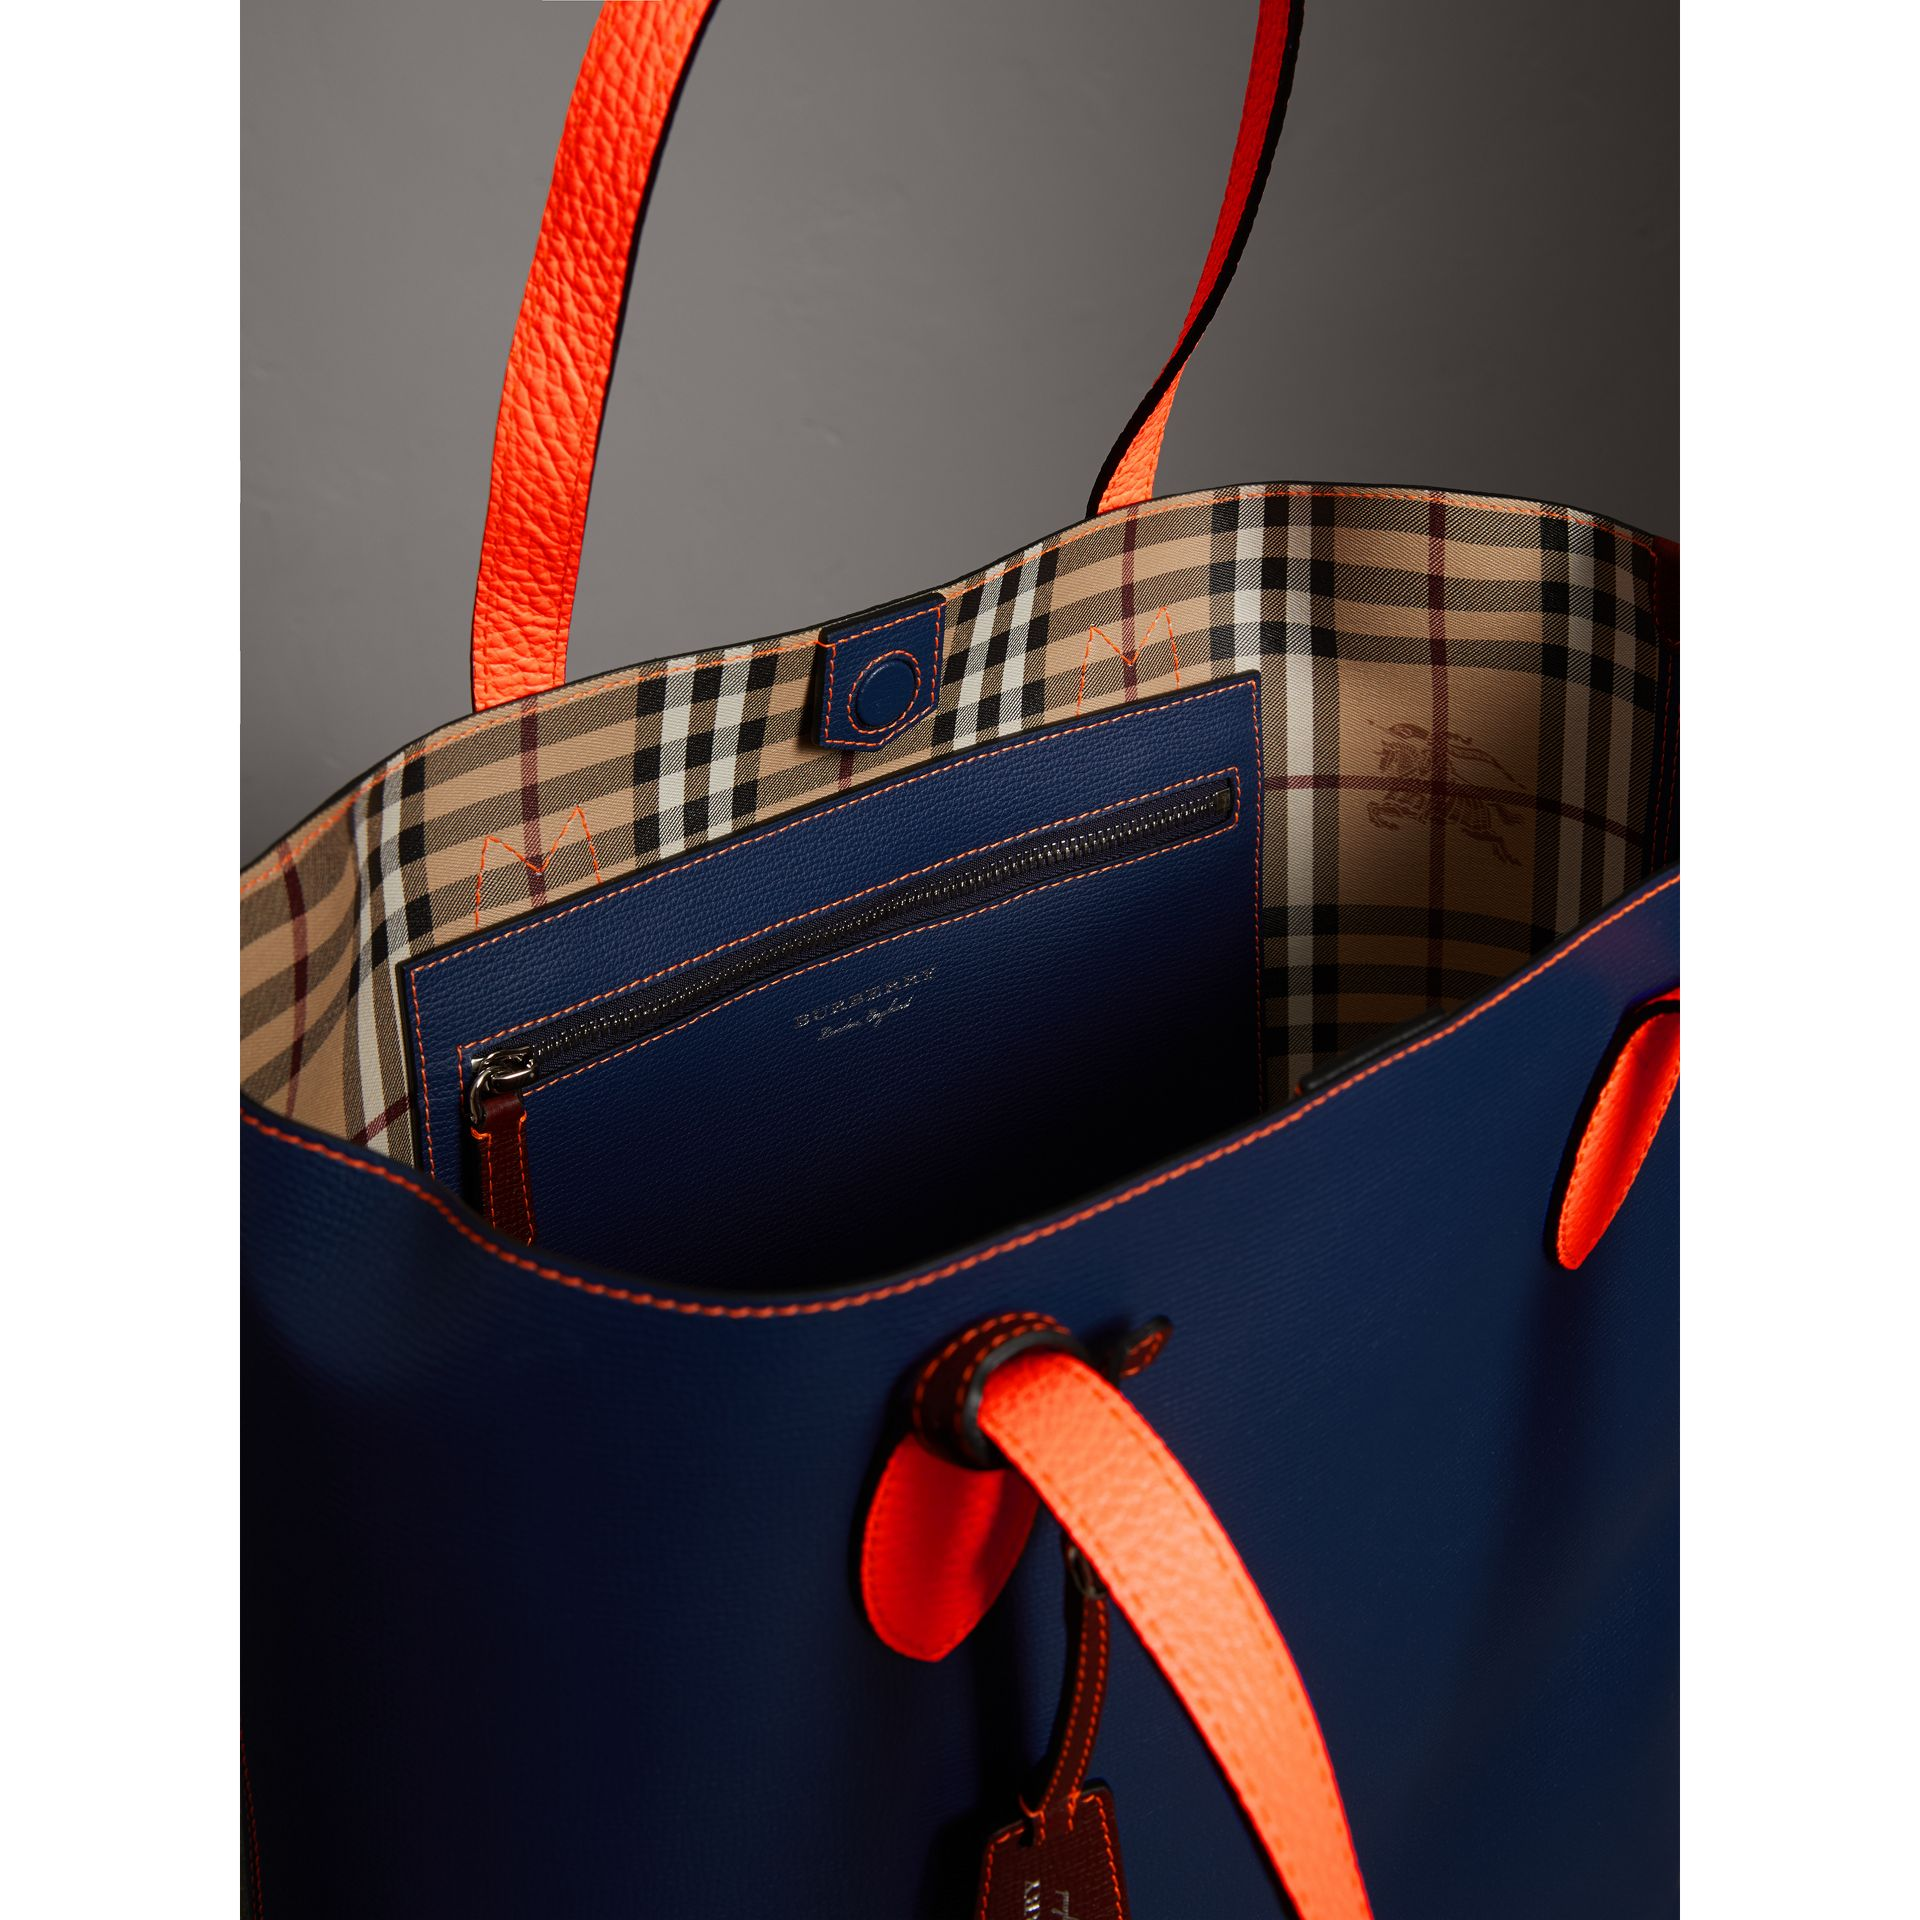 Medium Two-tone Coated Leather Tote in Dark Ultramarine | Burberry Australia - gallery image 4